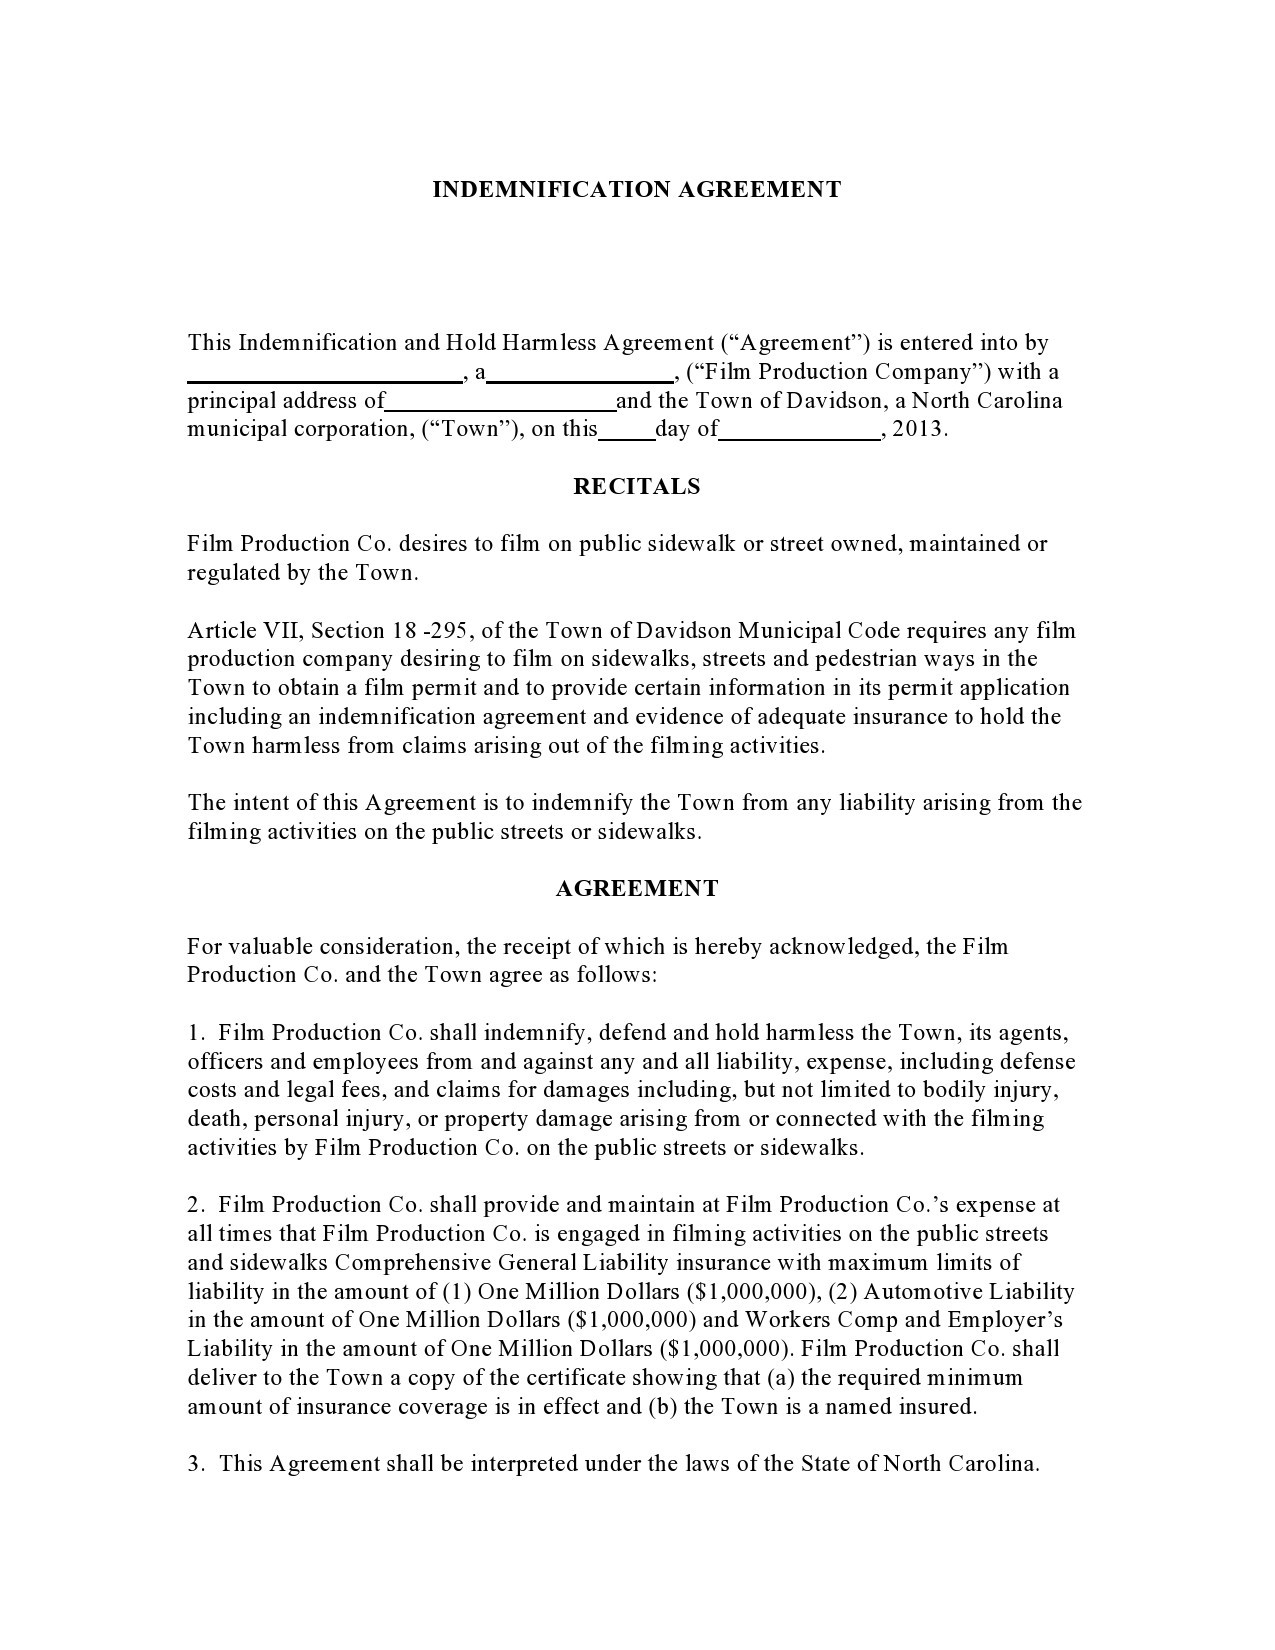 Free indemnification agreement 14